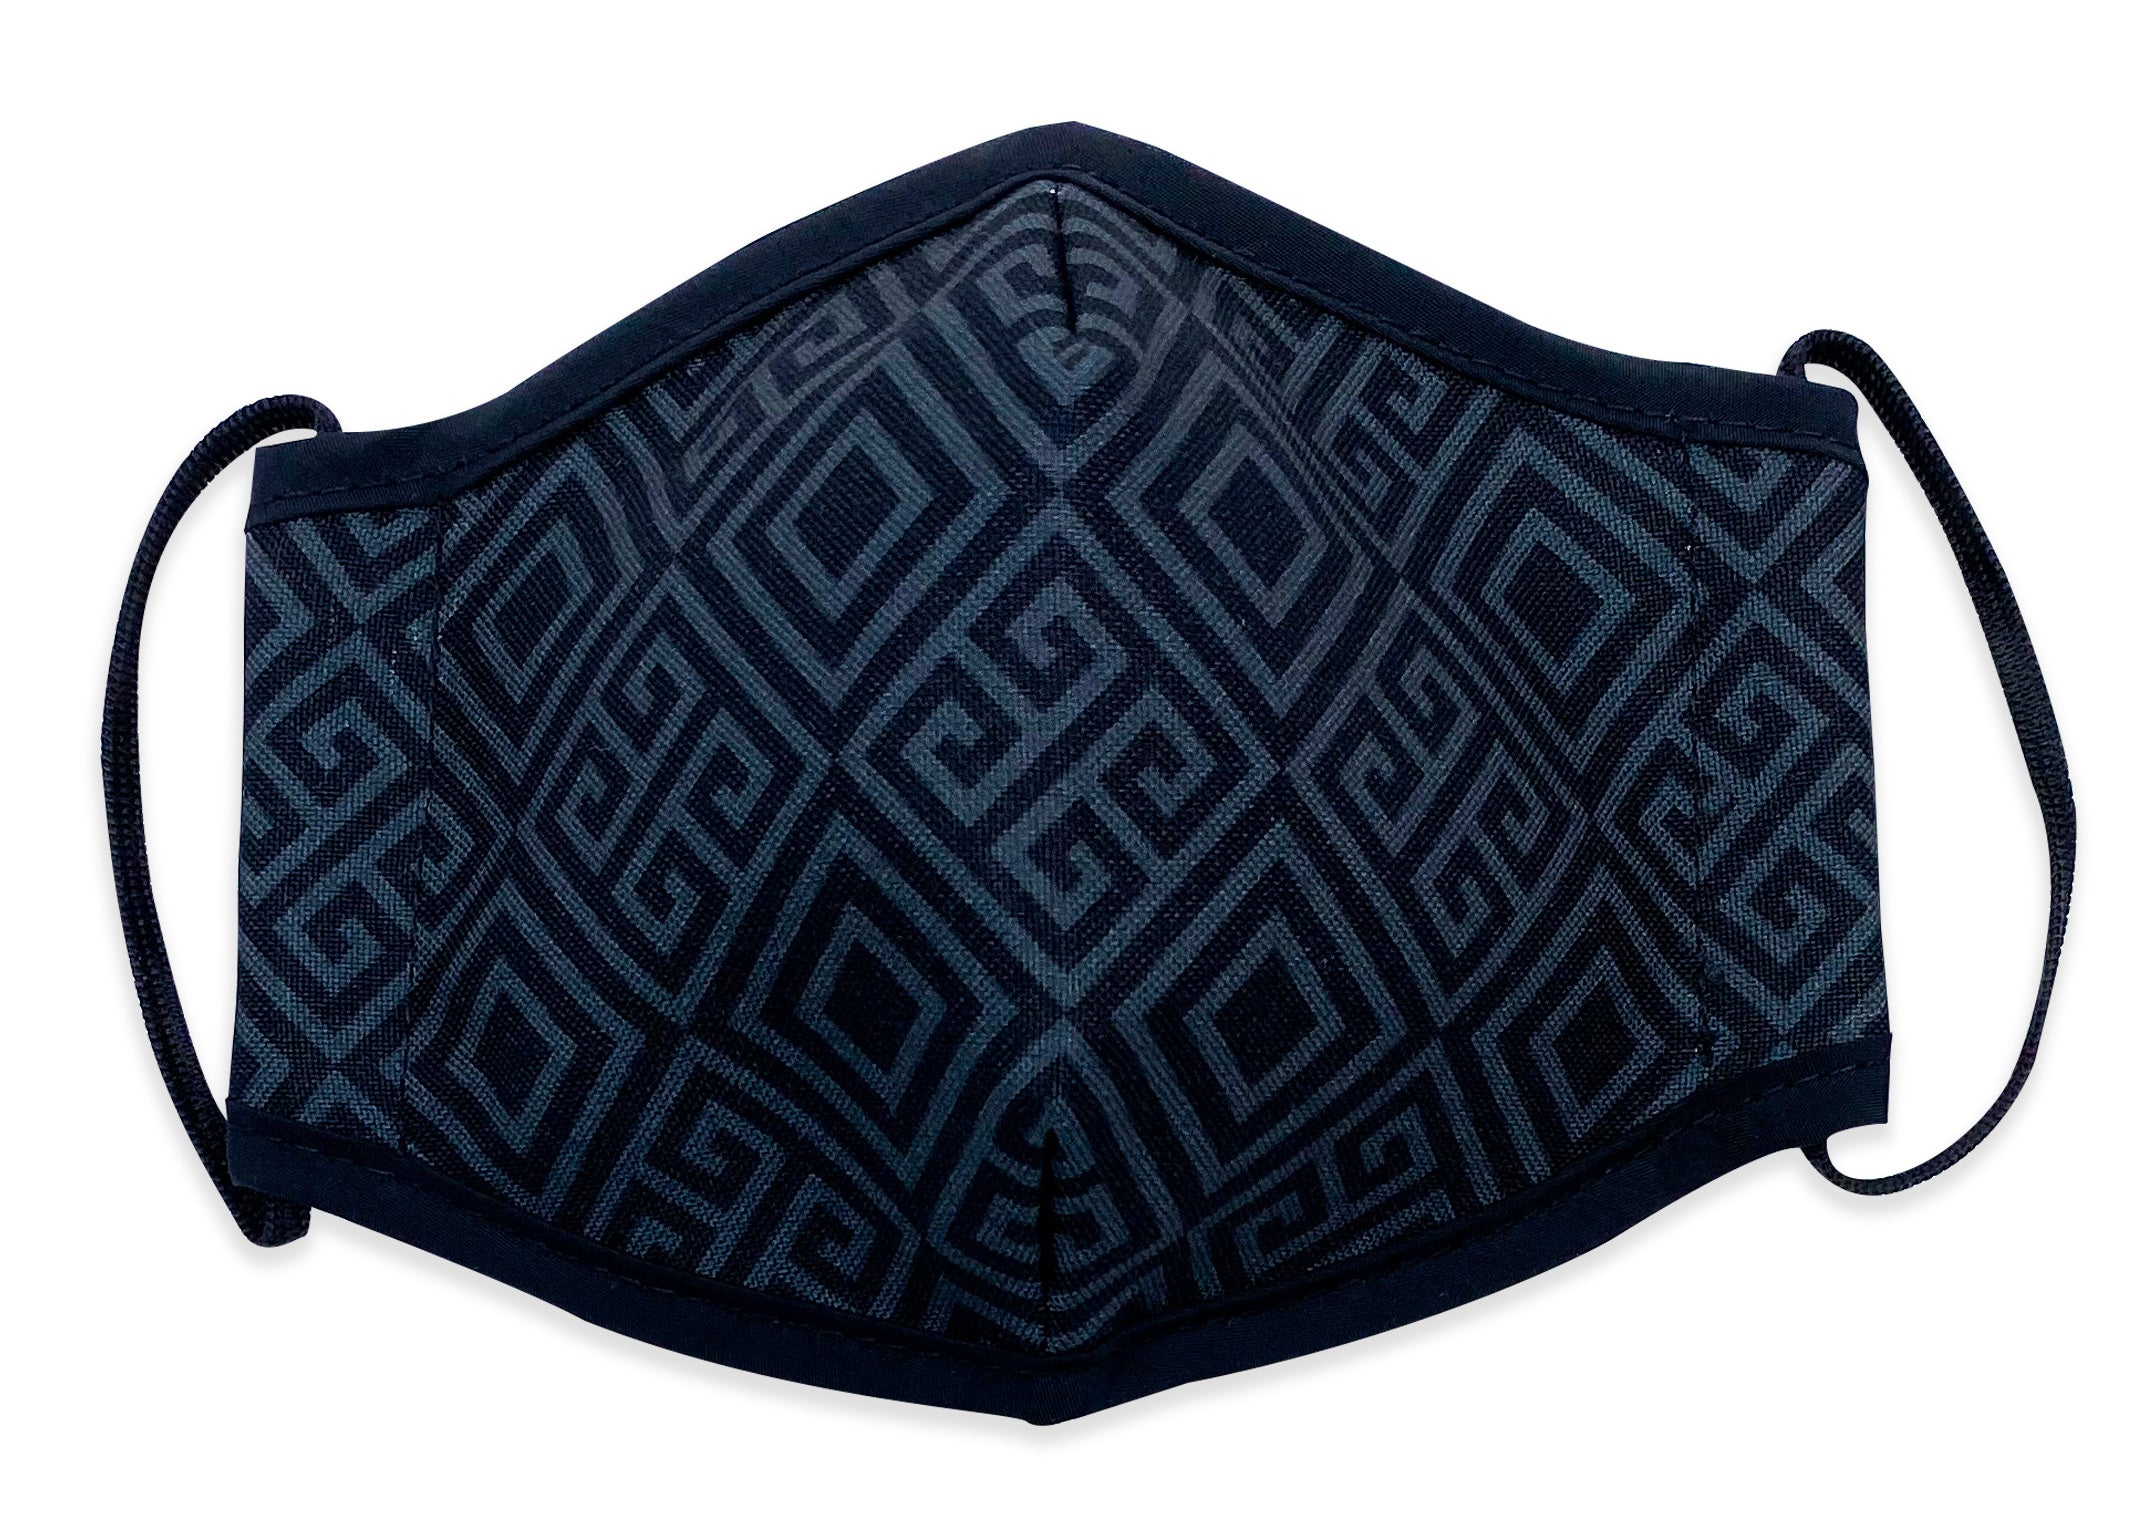 Reusable Face Mask Black Pattern